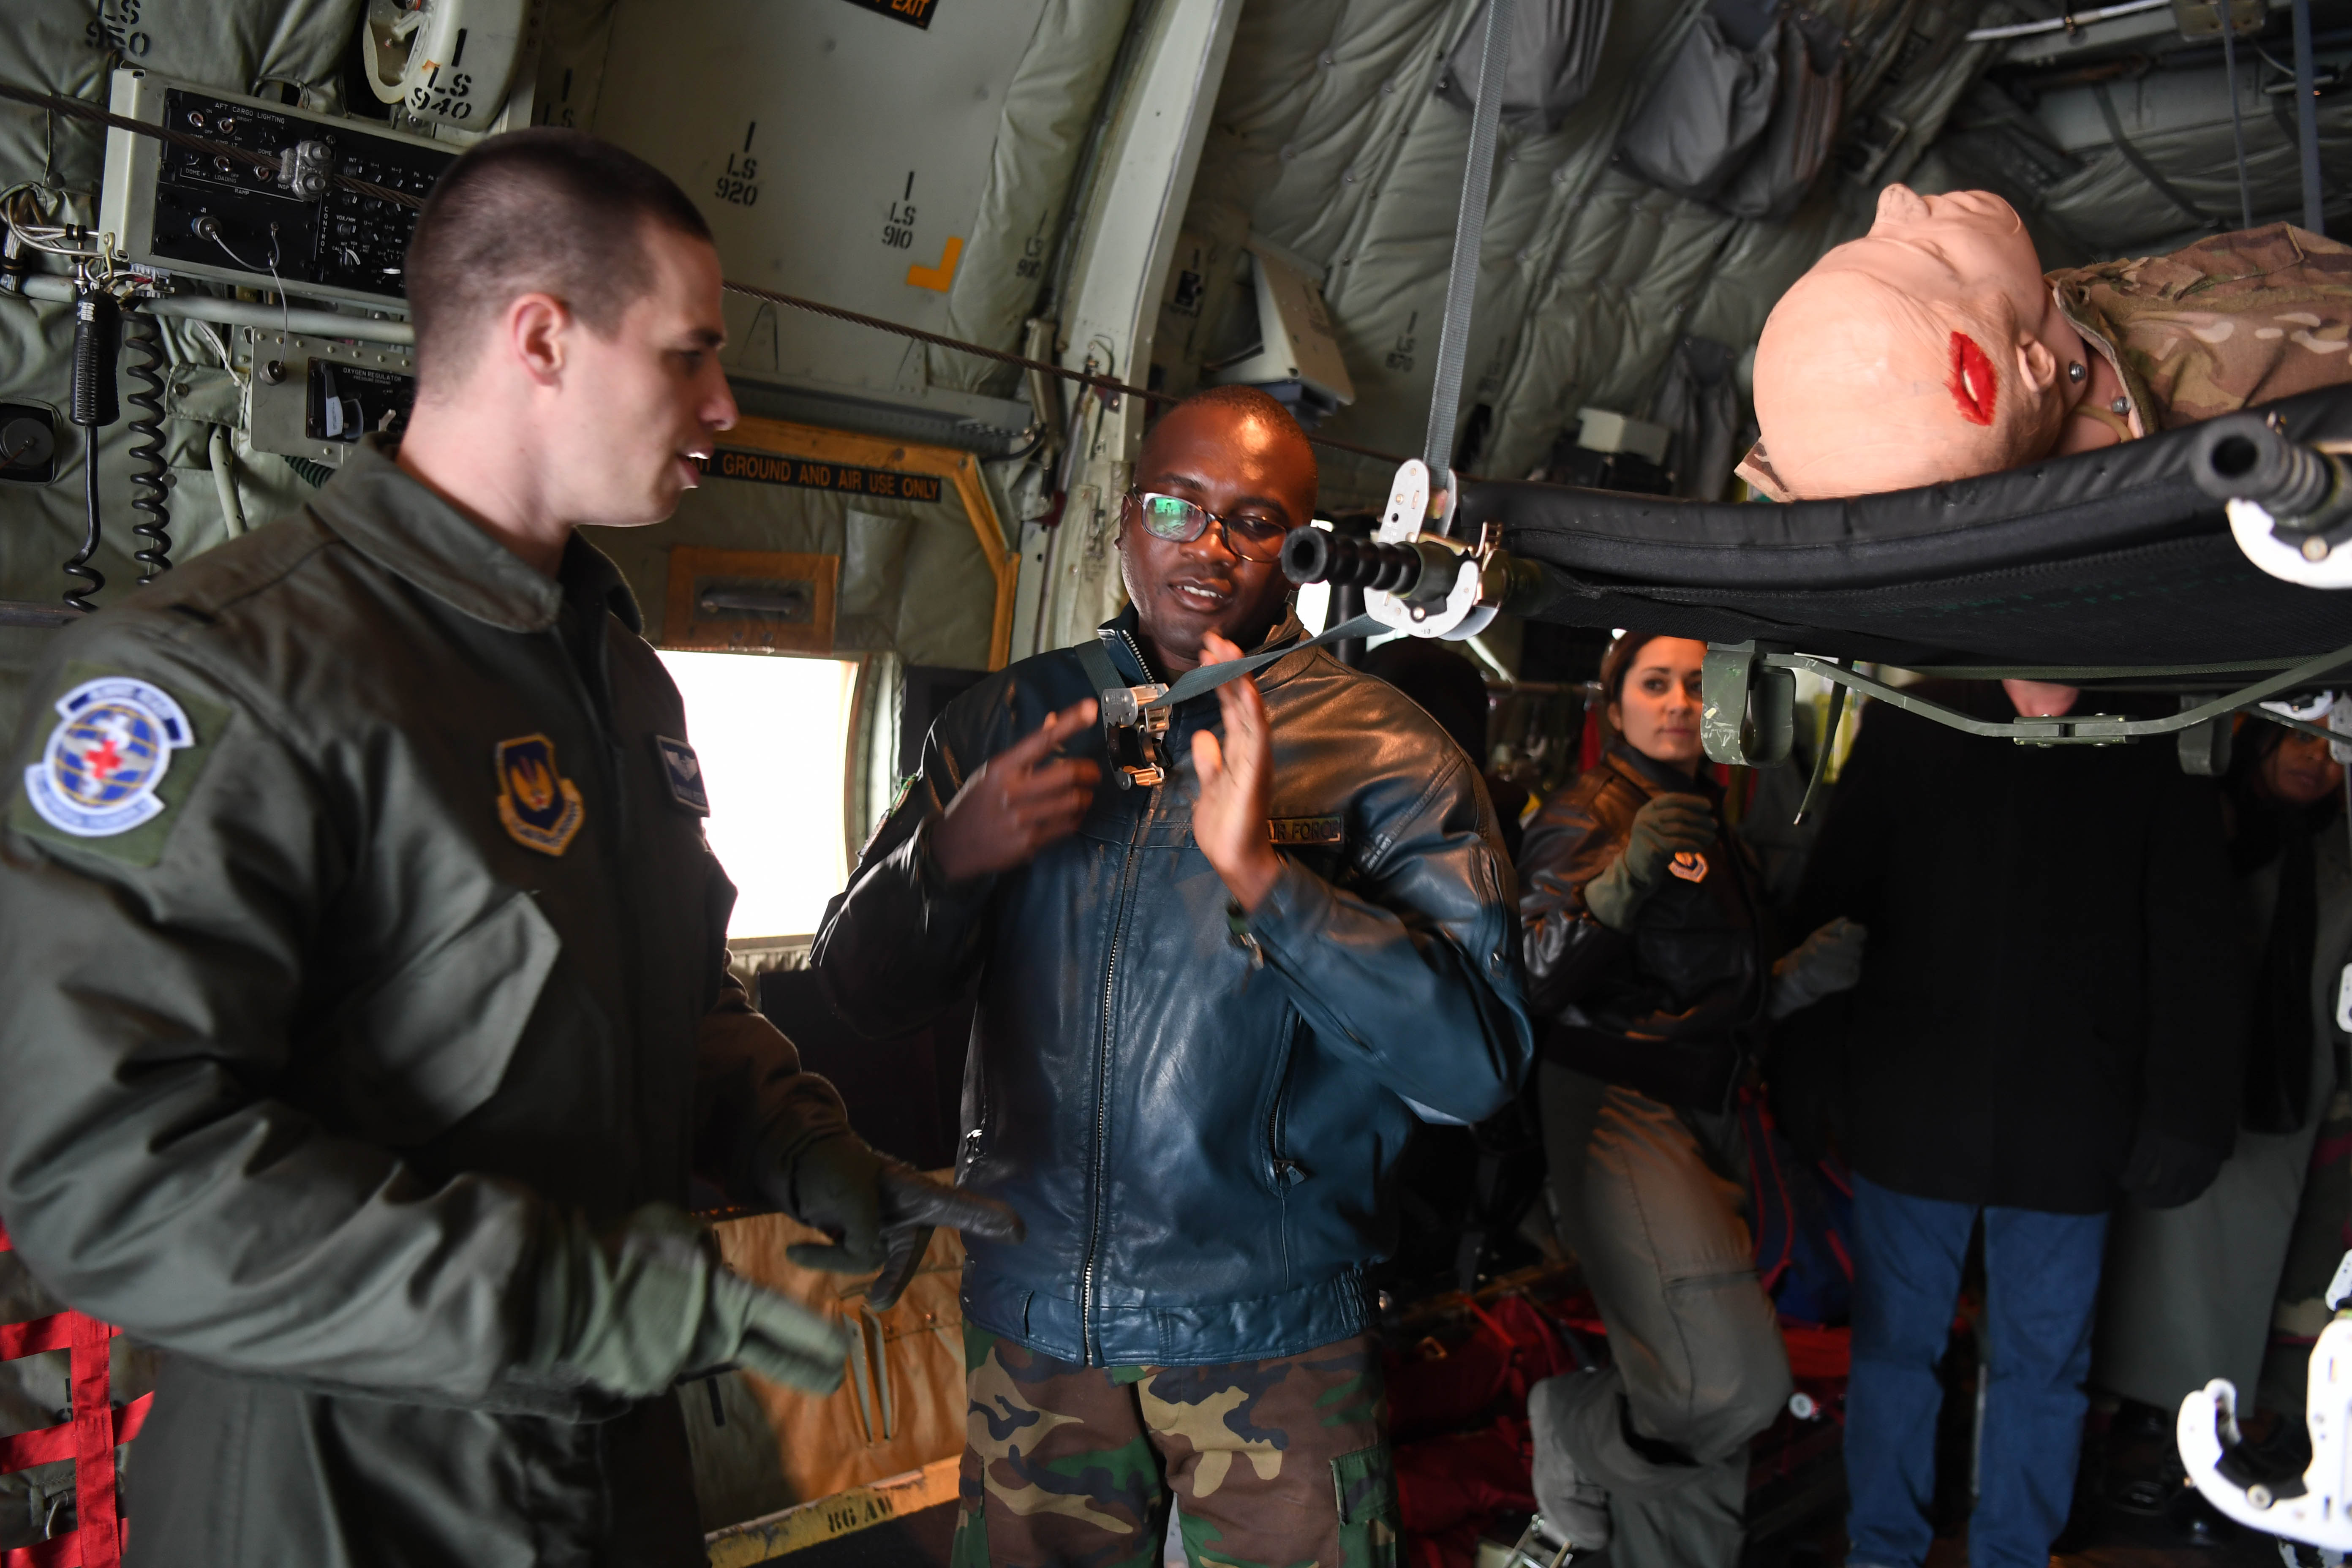 U.S. Air Force 1st Lt. Brian Potje, 86th Aeromedical Evacuation Squadron flight nurse, shows Zambian air force Maj. Nelson Lombe, how to secure a patient on a litter in a C-130J Super Hercules at Ramstein Air Base, Germany, Jan. 18, 2018. As part of the U.S. Air Forces Europe-Air Forces in Africa Partnership Flight Symposium aeromedical aircrews from 13 nations exchanged ideas and procedures with other nations to better understand capabilities and strategies used in medical airlift. (U.S. Air Force photo by Tech. Sgt. Rachelle Coleman)